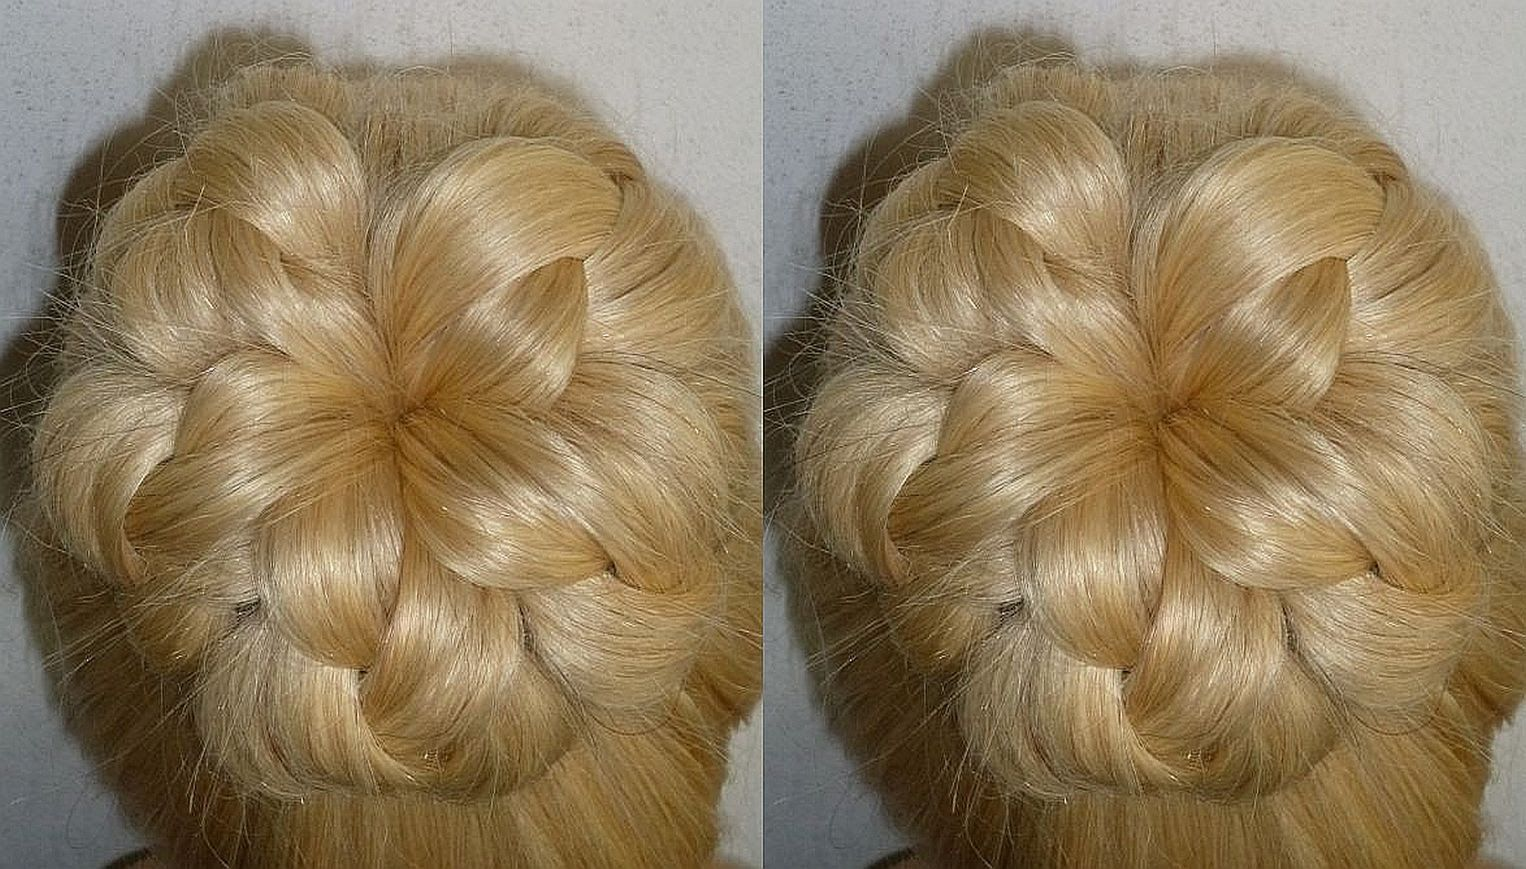 Easy and quick prom wedding hairstyle evening donut hair bun updo hairst also rh pinterest